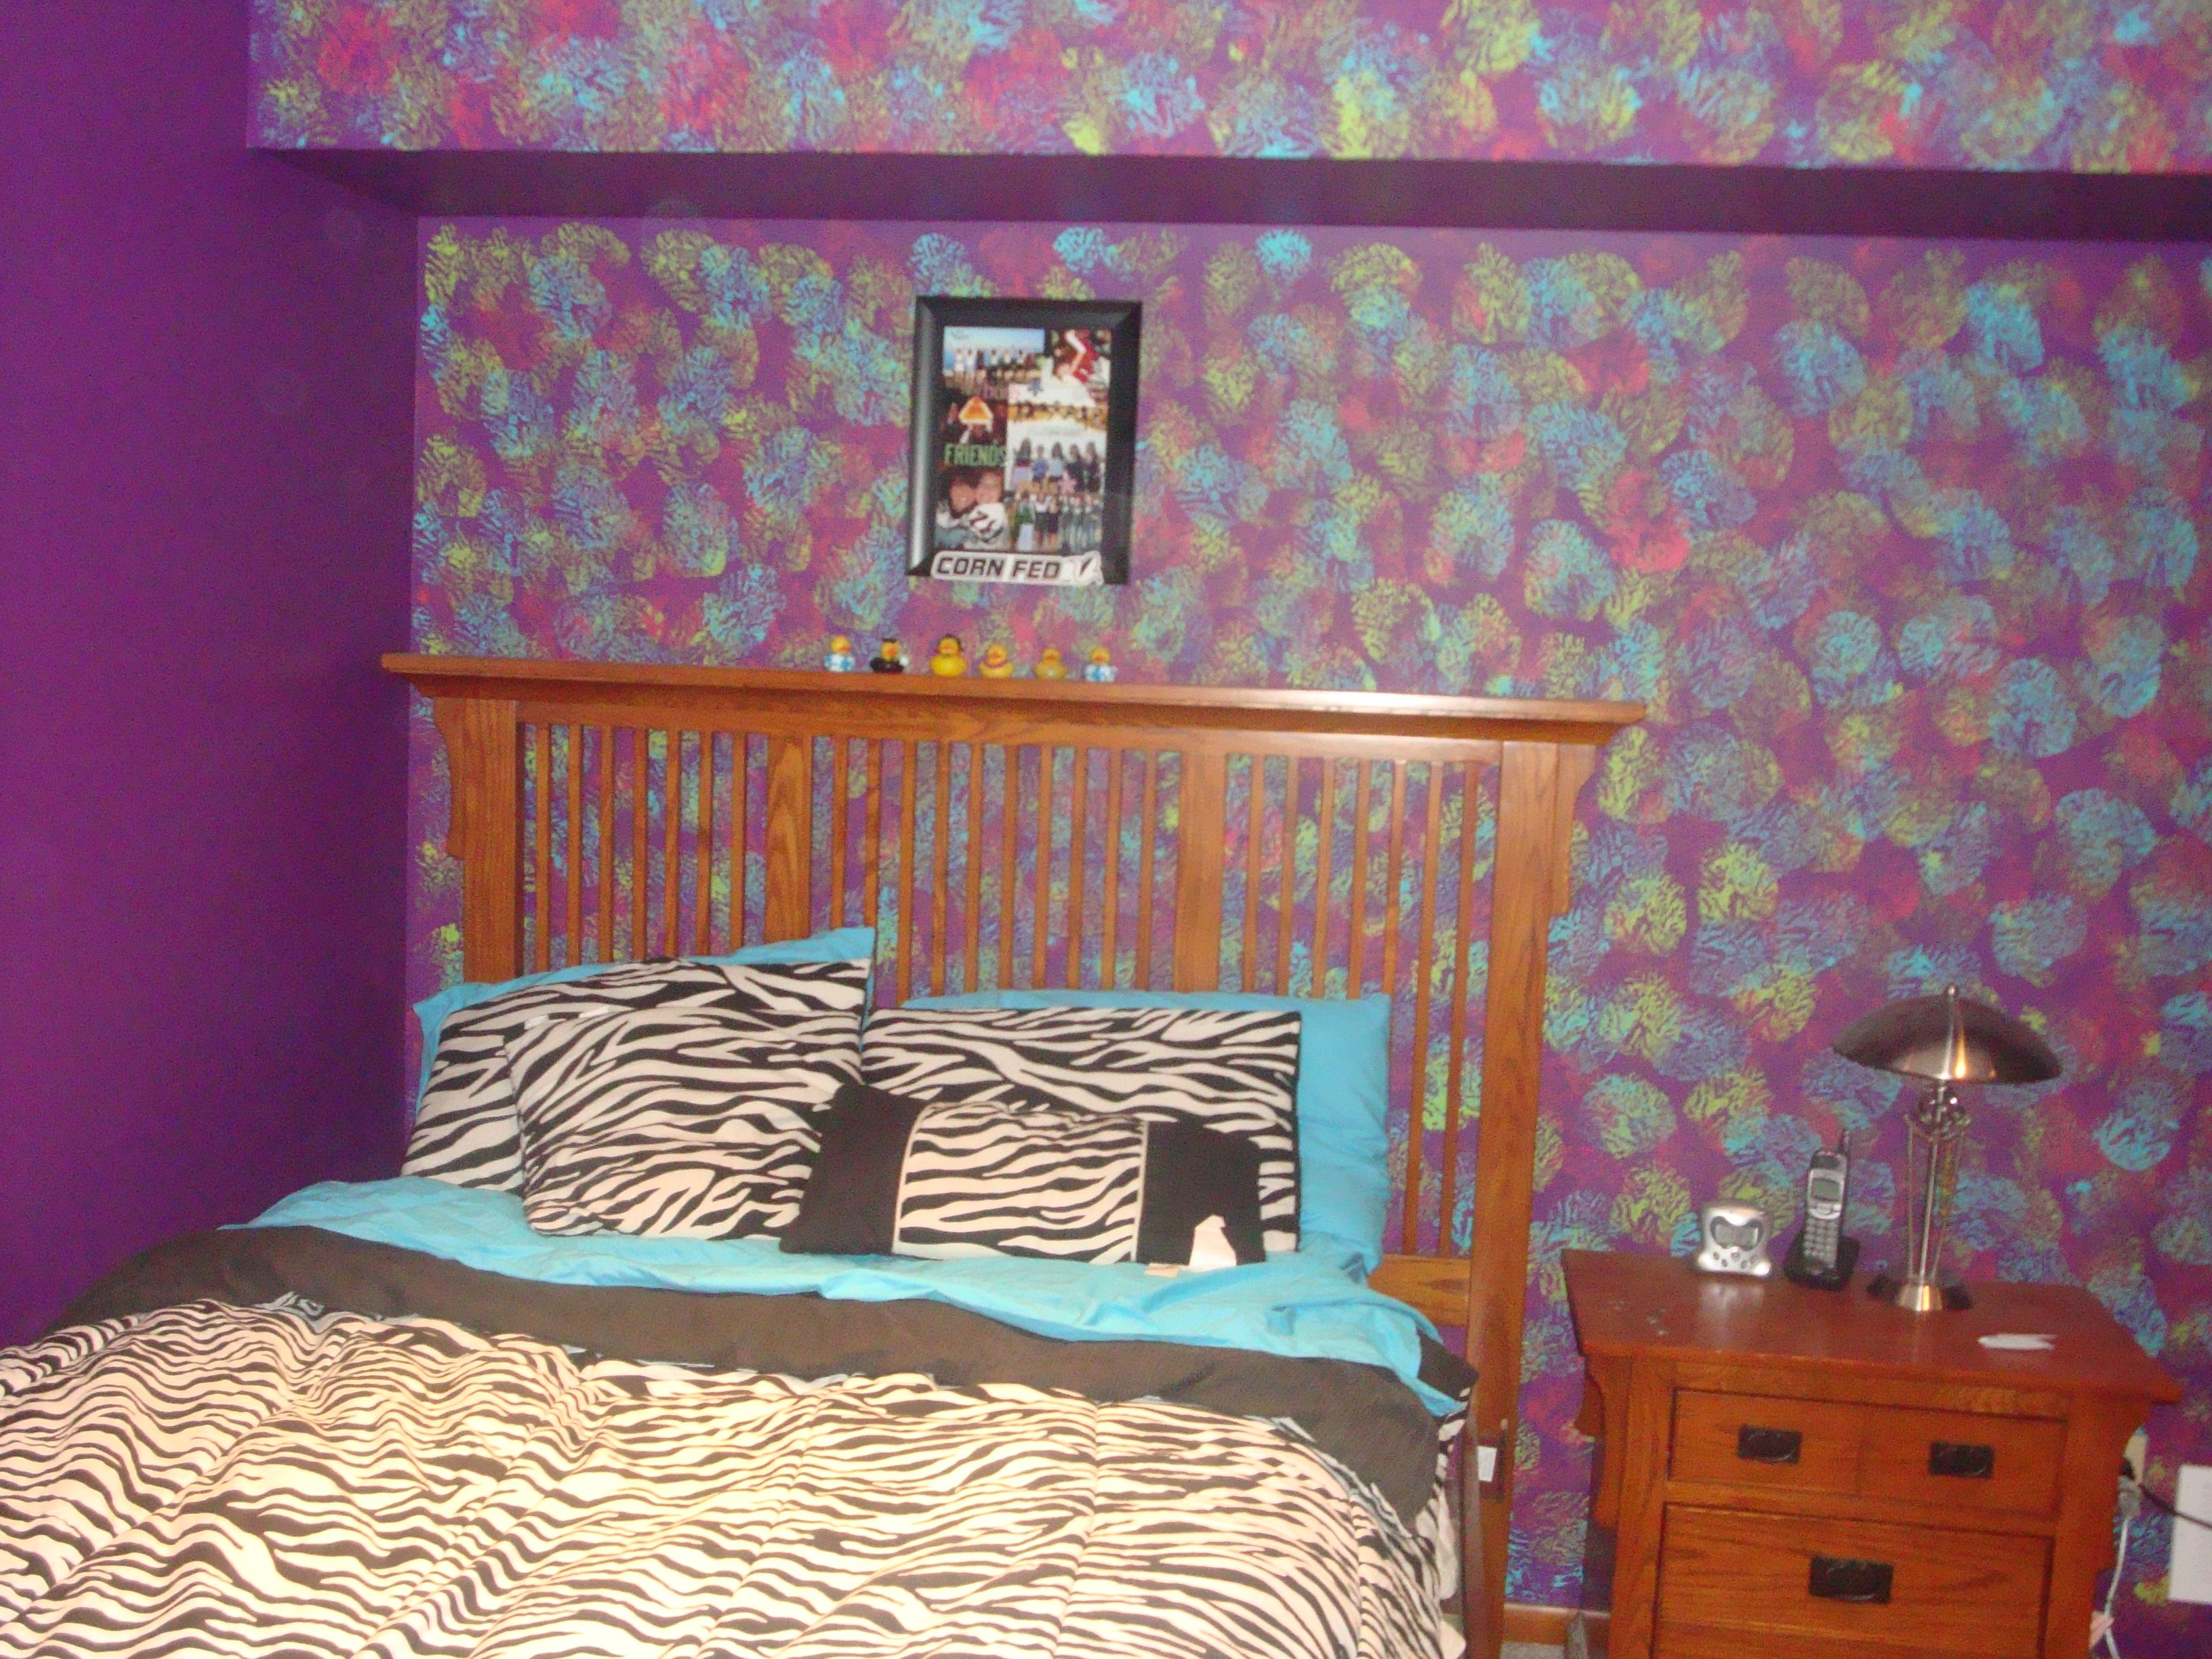 This Is My Legit Bedroom I Painted The Wall Purple First And Then Sponge Painted It Blue Green